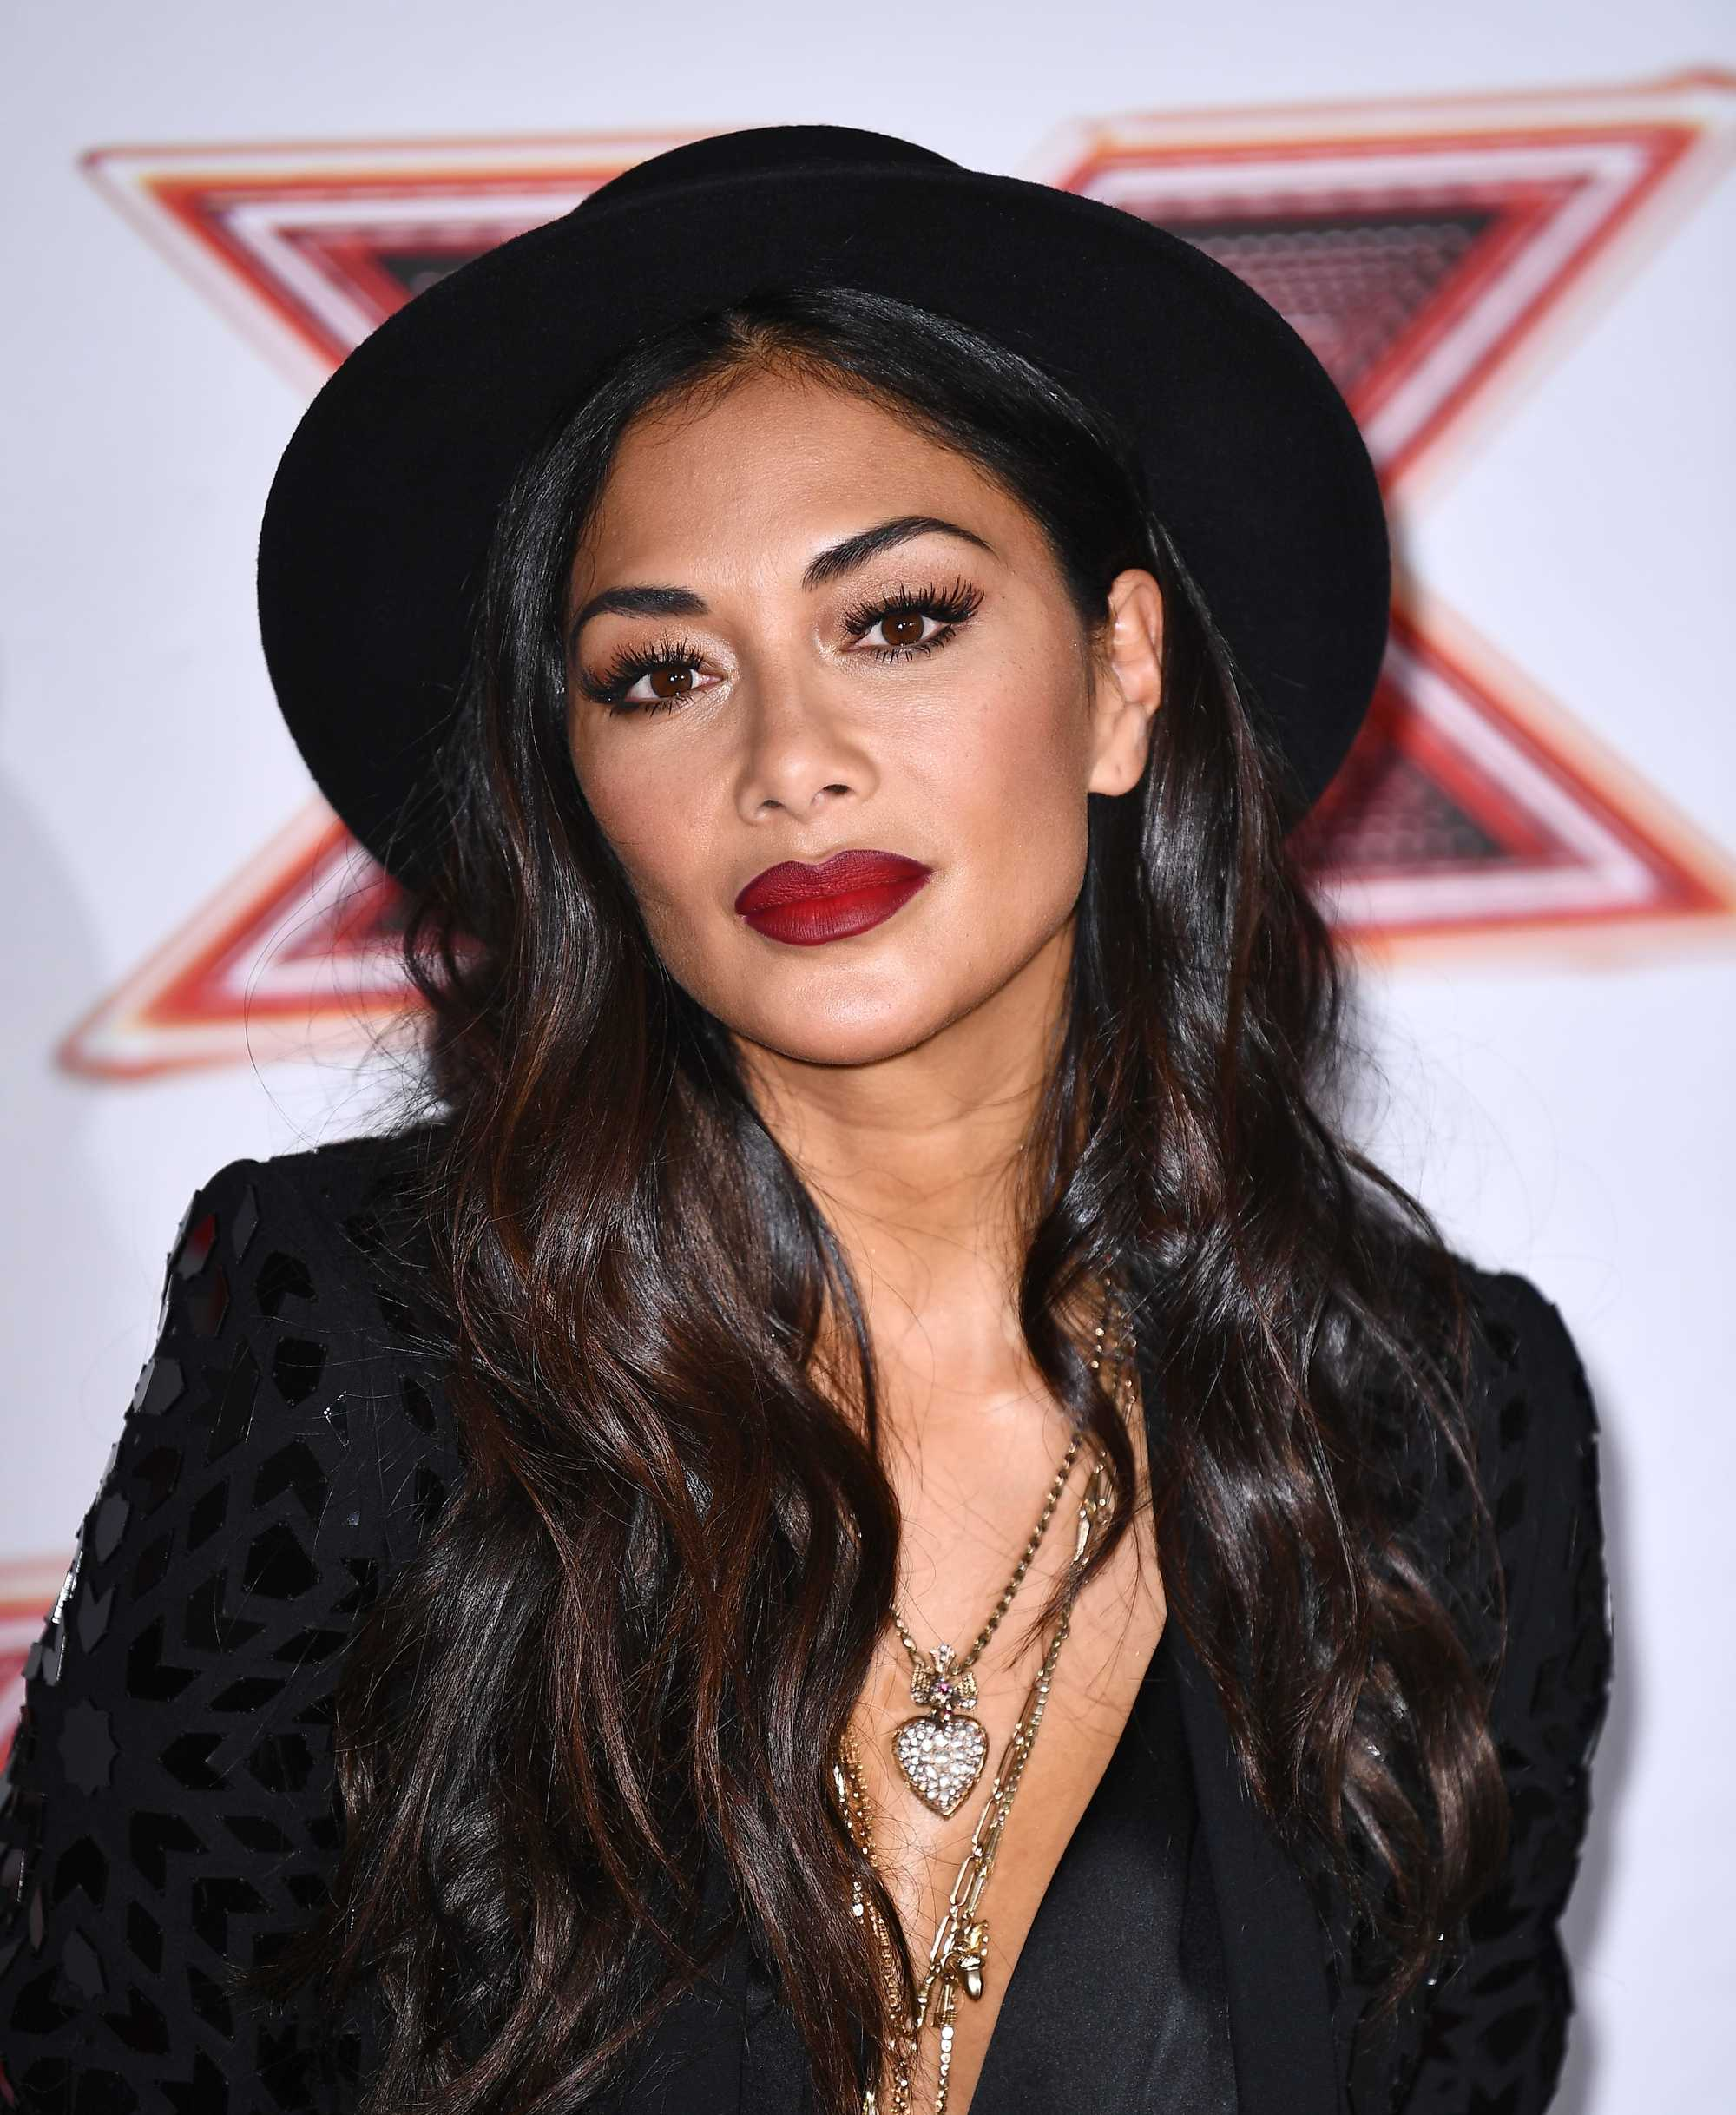 nicole scherzinger at the x factor wearing a black trilby hat with long dark curly hair with lowlights